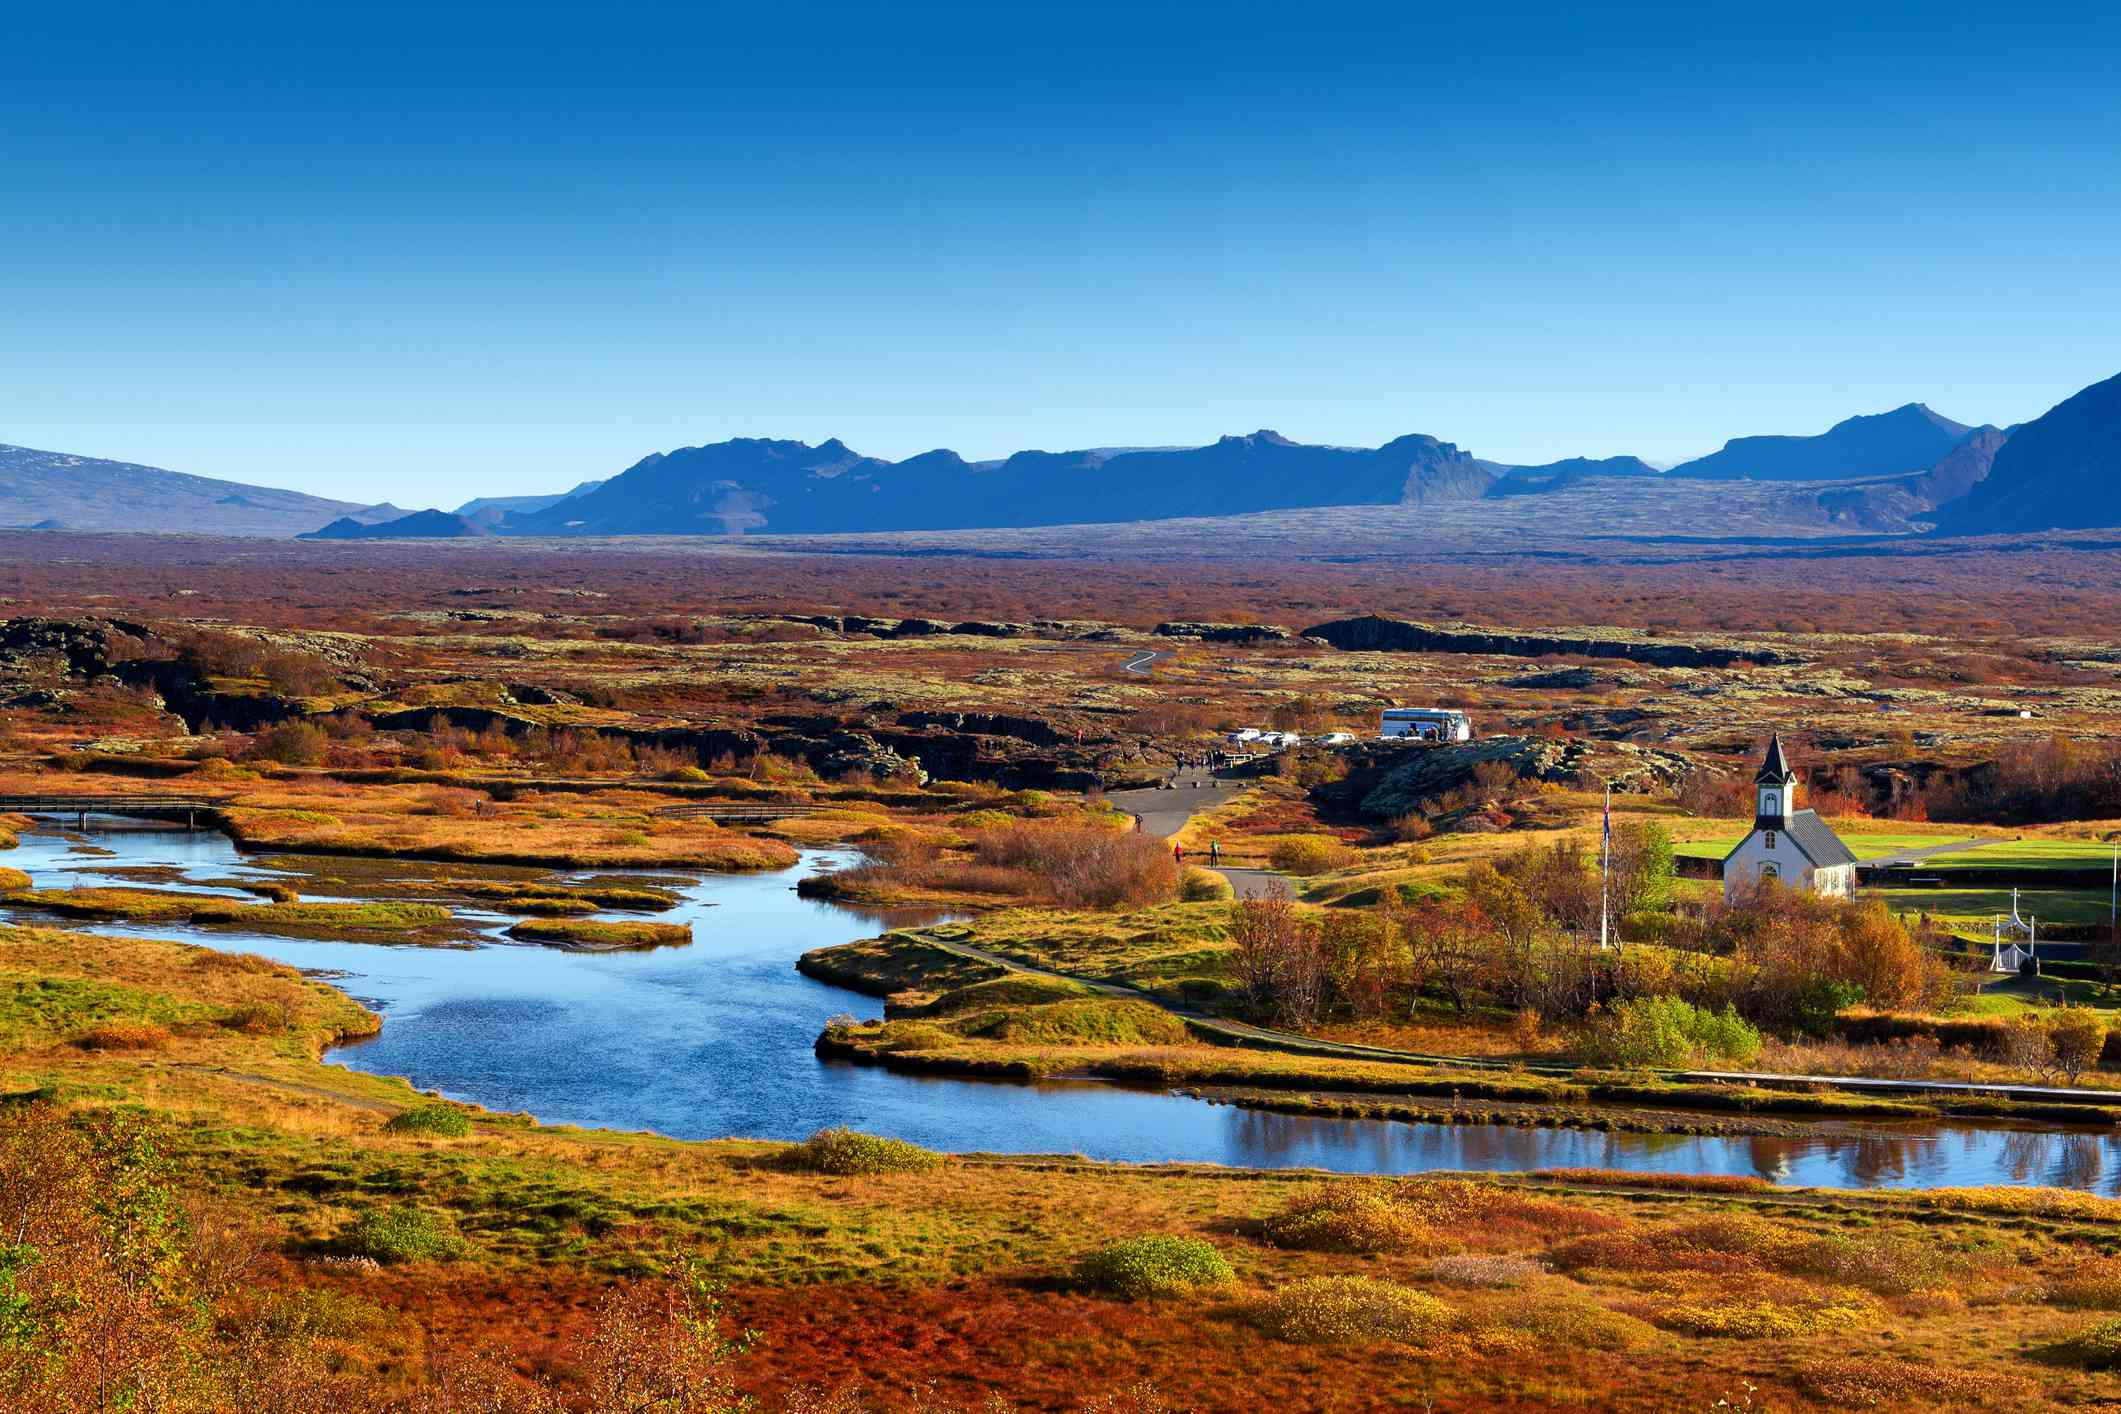 Thingvallakirkja Church along banks of Oxara River in Thingvellir National Park, Iceland, with trees and plants in shades of red, green and orange on both sides of the river, mountains and bright blue sky in the distance